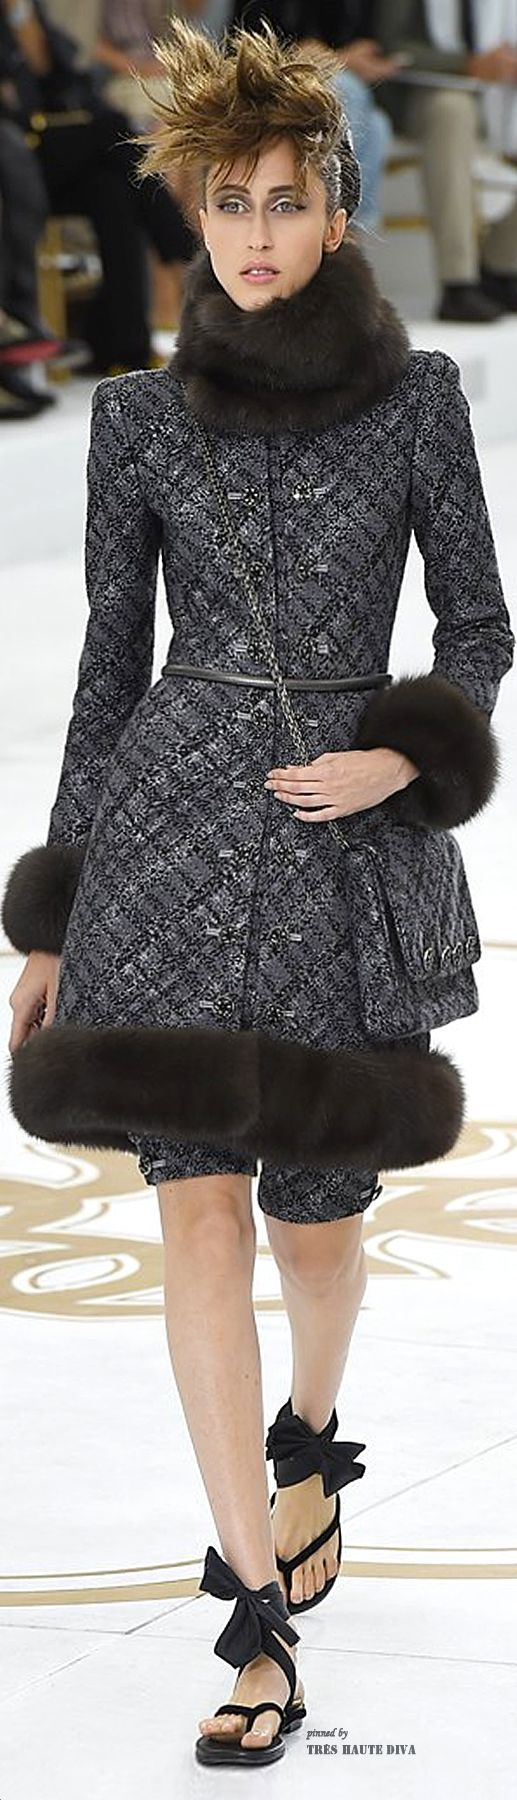 Chanel Haute Couture Fall/Winter 2014-15